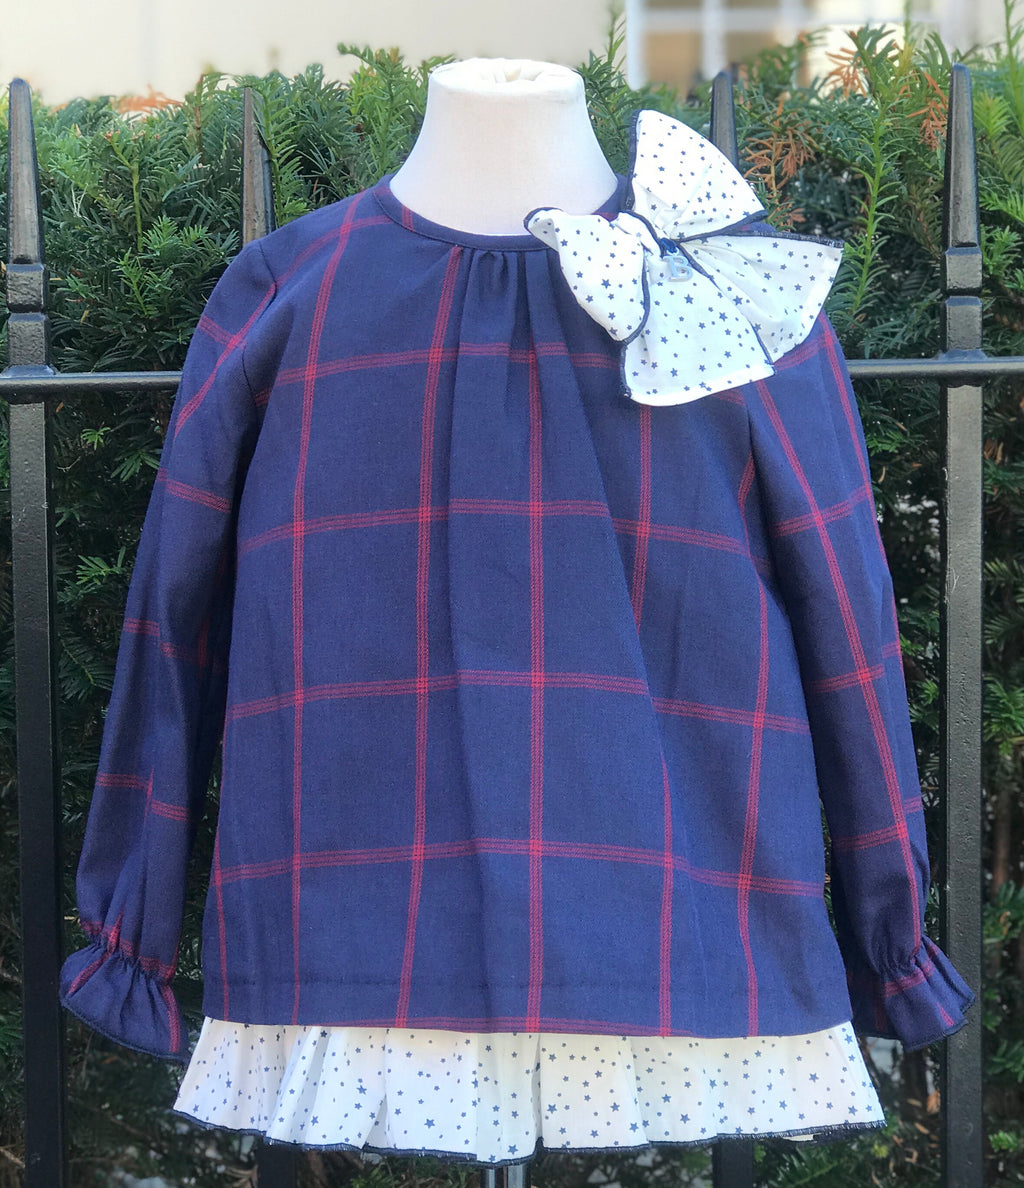 Babine Navy and Red Check A line Dress - Roo's Online Shop - children's clothes - Mary Jane shoes - dress